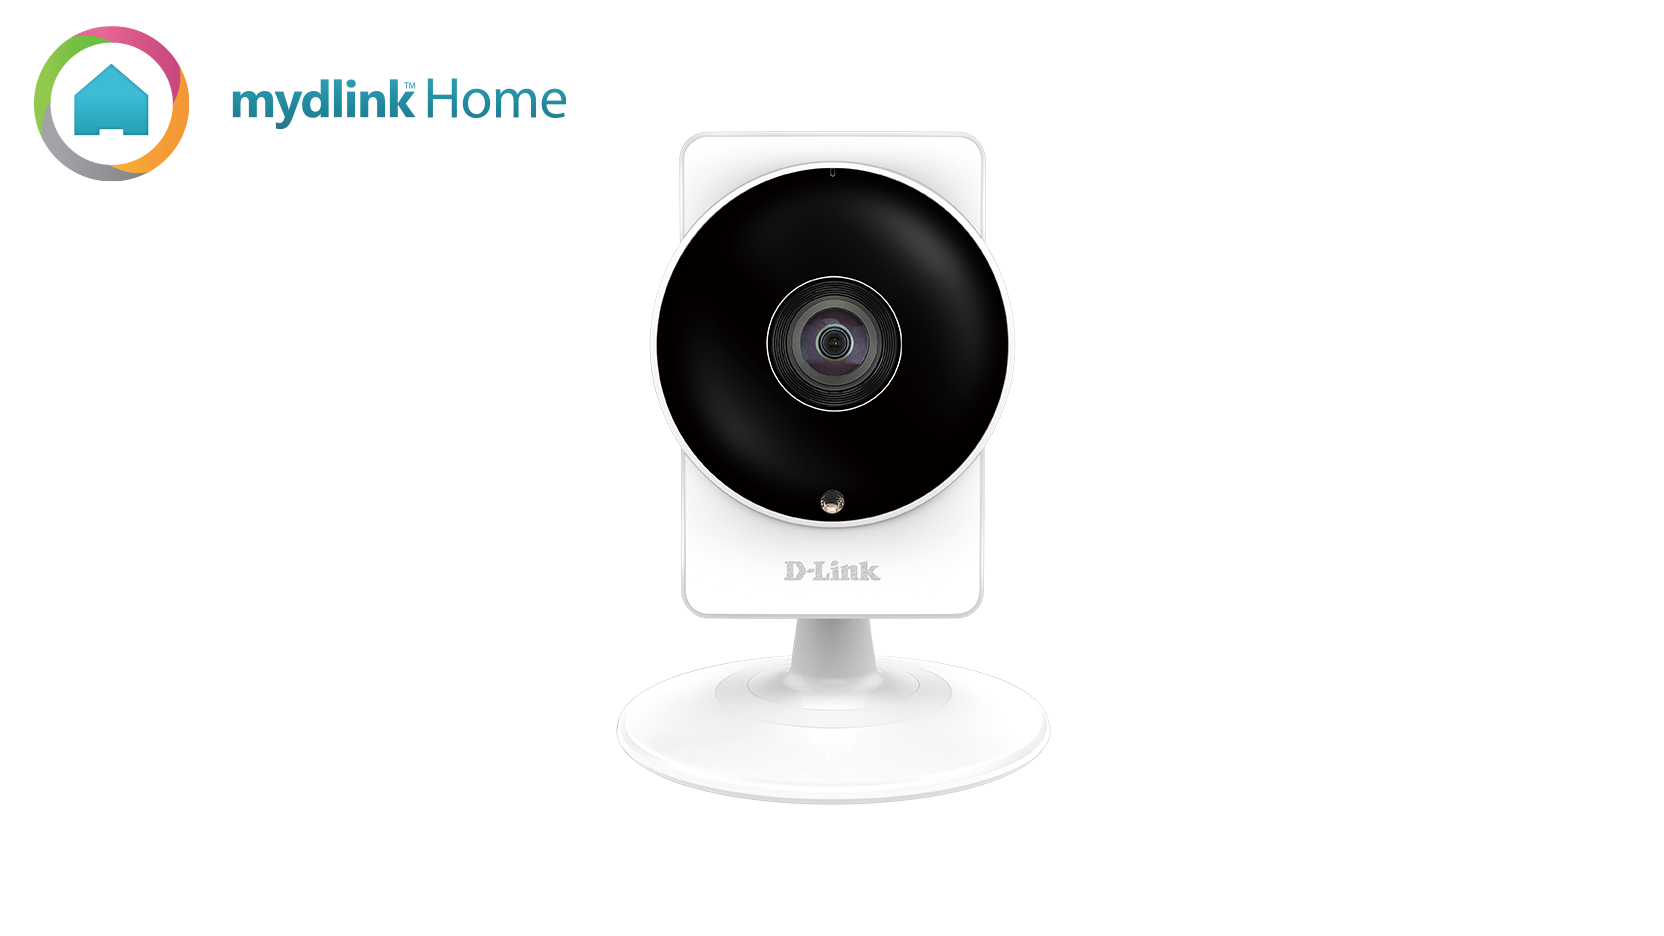 D-Link DCS-8200LH myHome Panoramic Camera HD